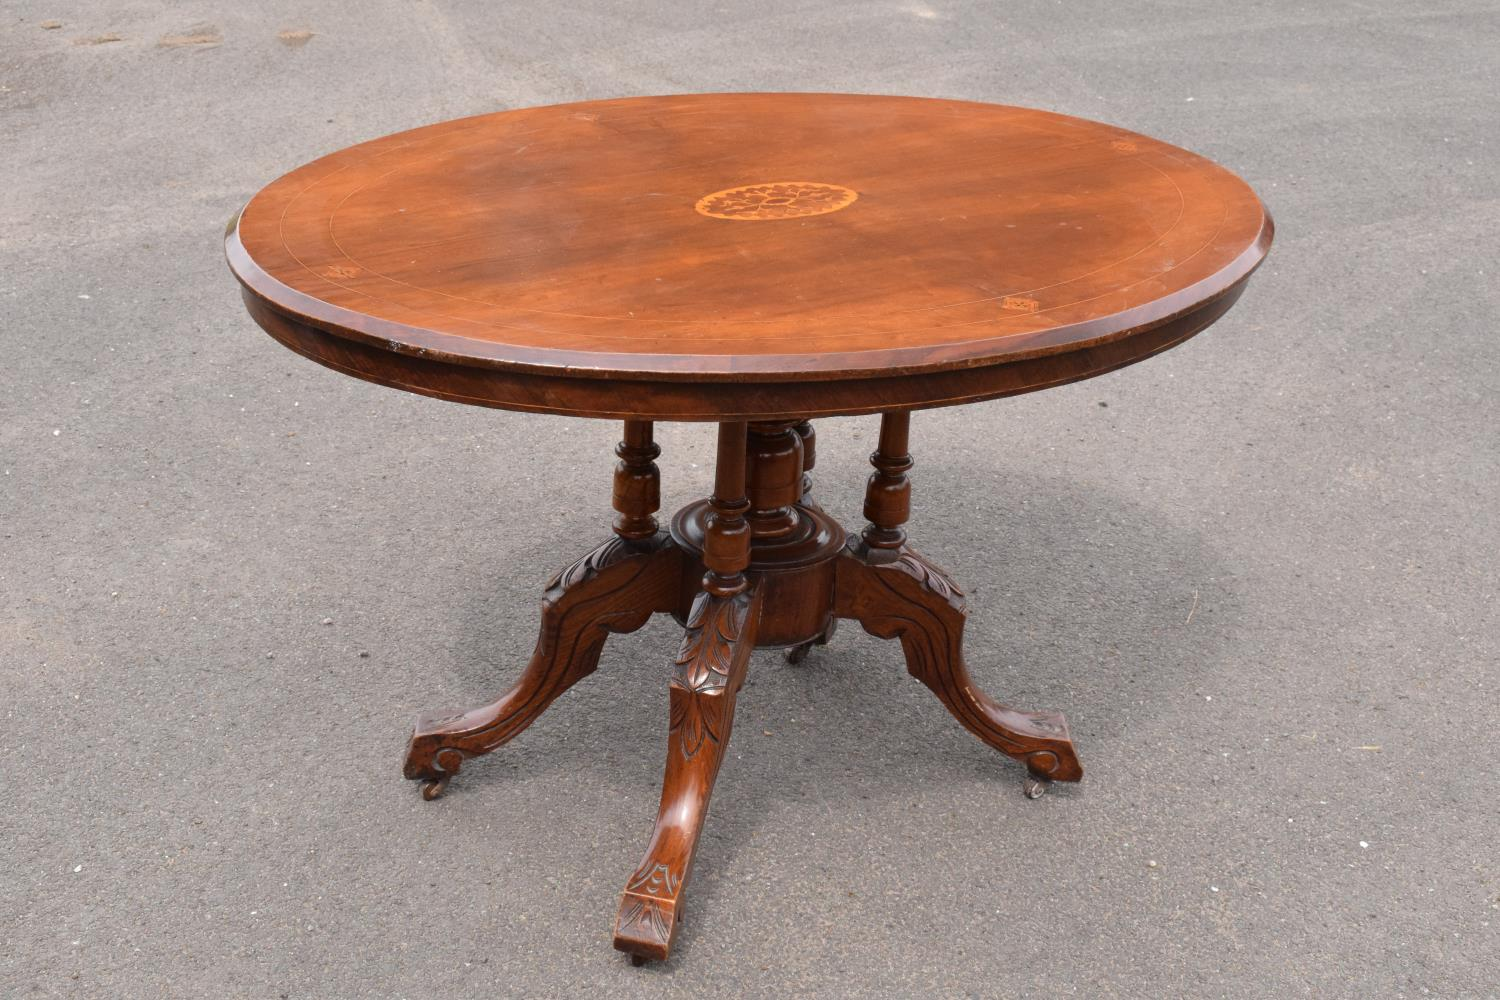 Late 19th century Victorian walnut veneered table with tilt top movement. In good condition with